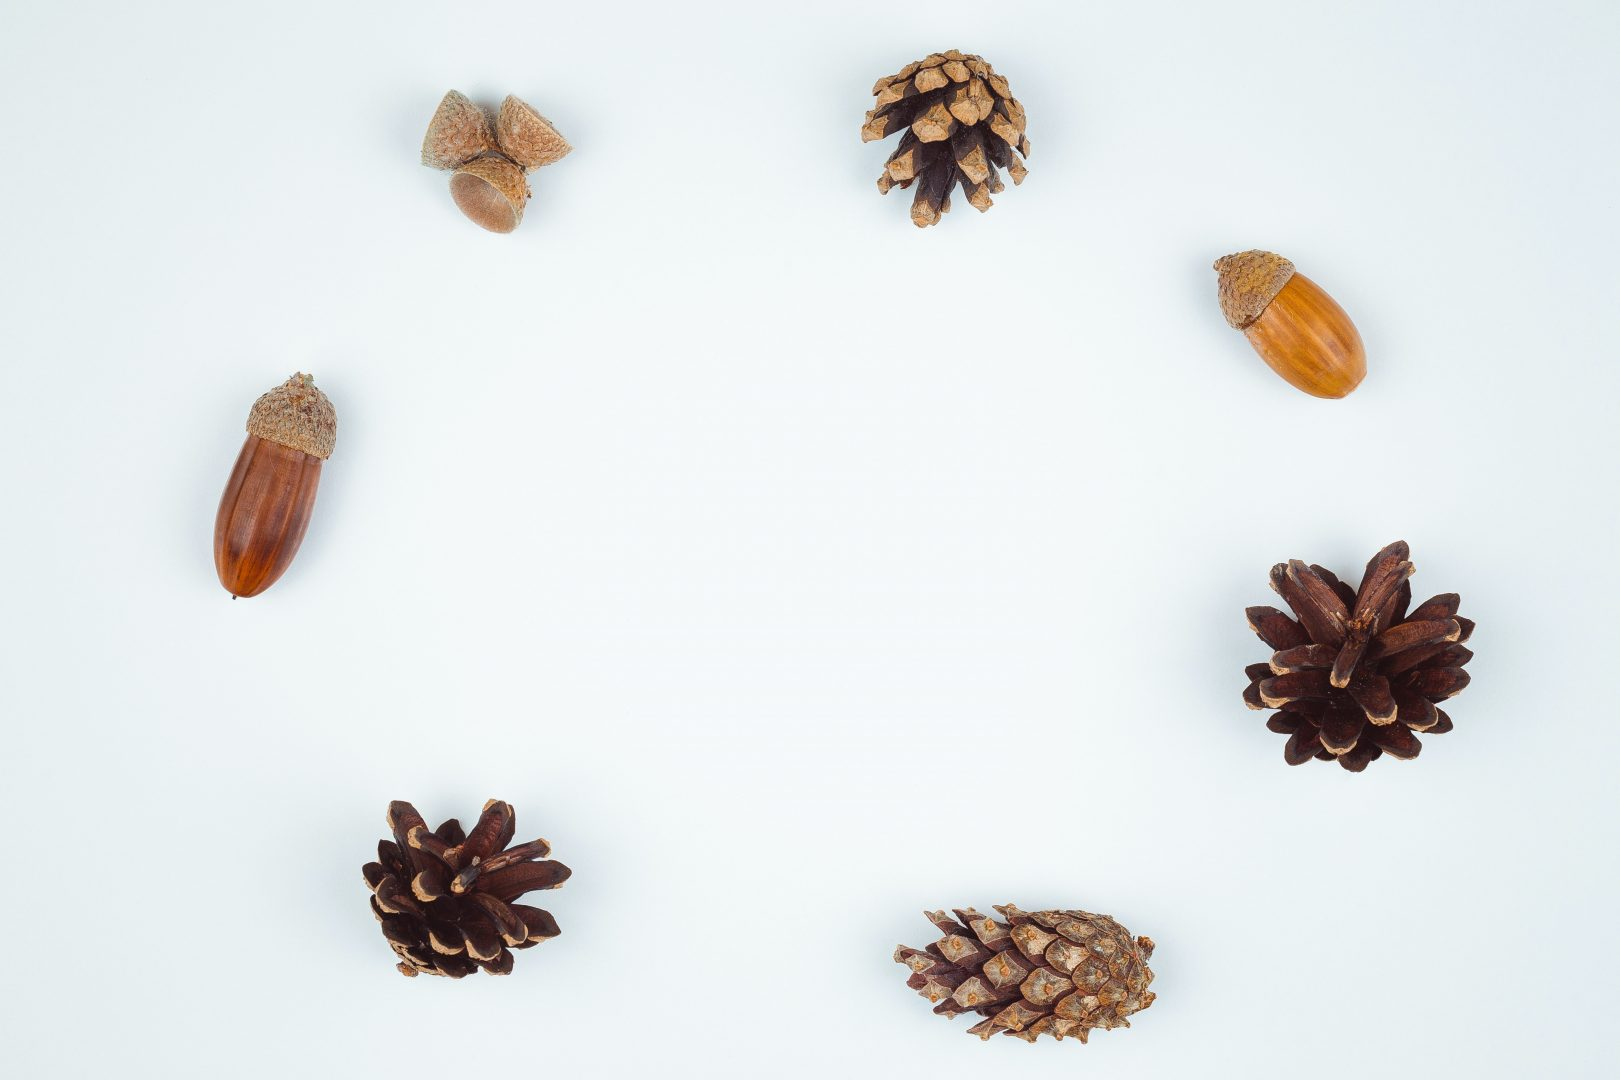 four brown pinecones and three acorns